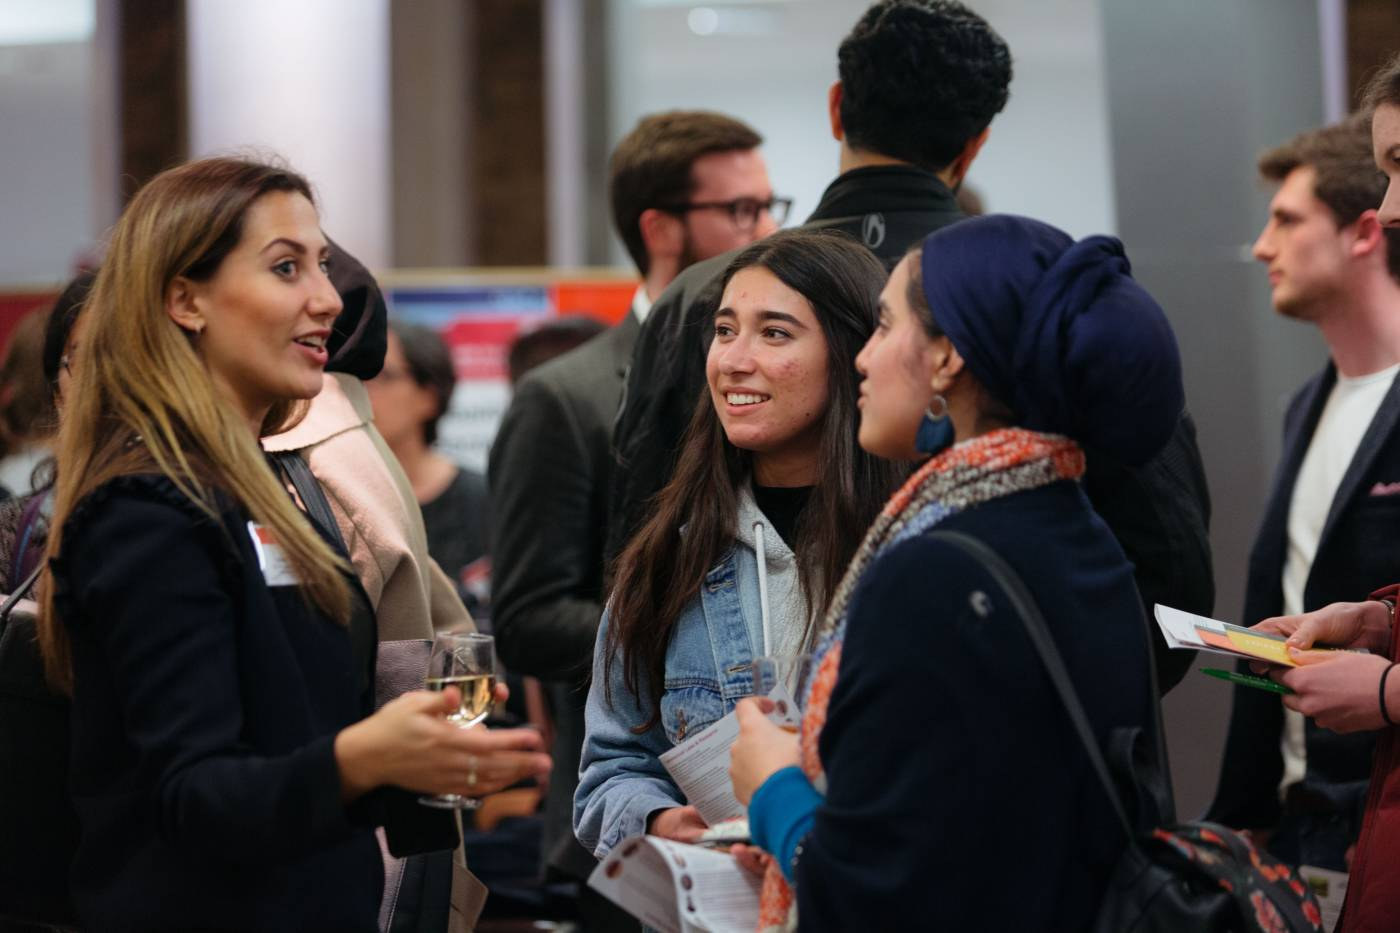 Two students standing talking to an employer at a careers fair